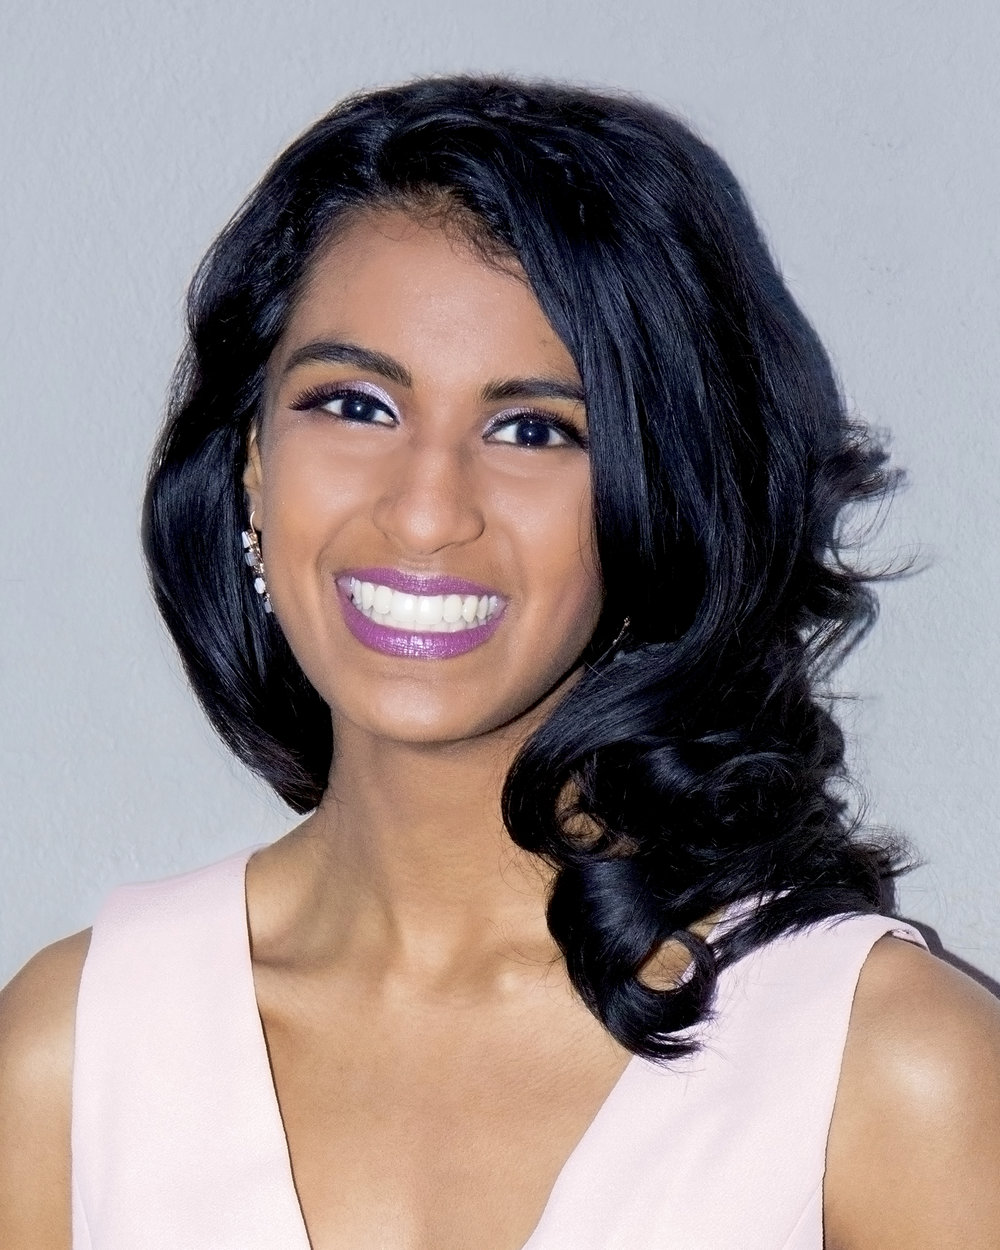 NEETU CHANDAK Seneca Falls Facebook Talent: Piano Platform:  Mentors Empower ME